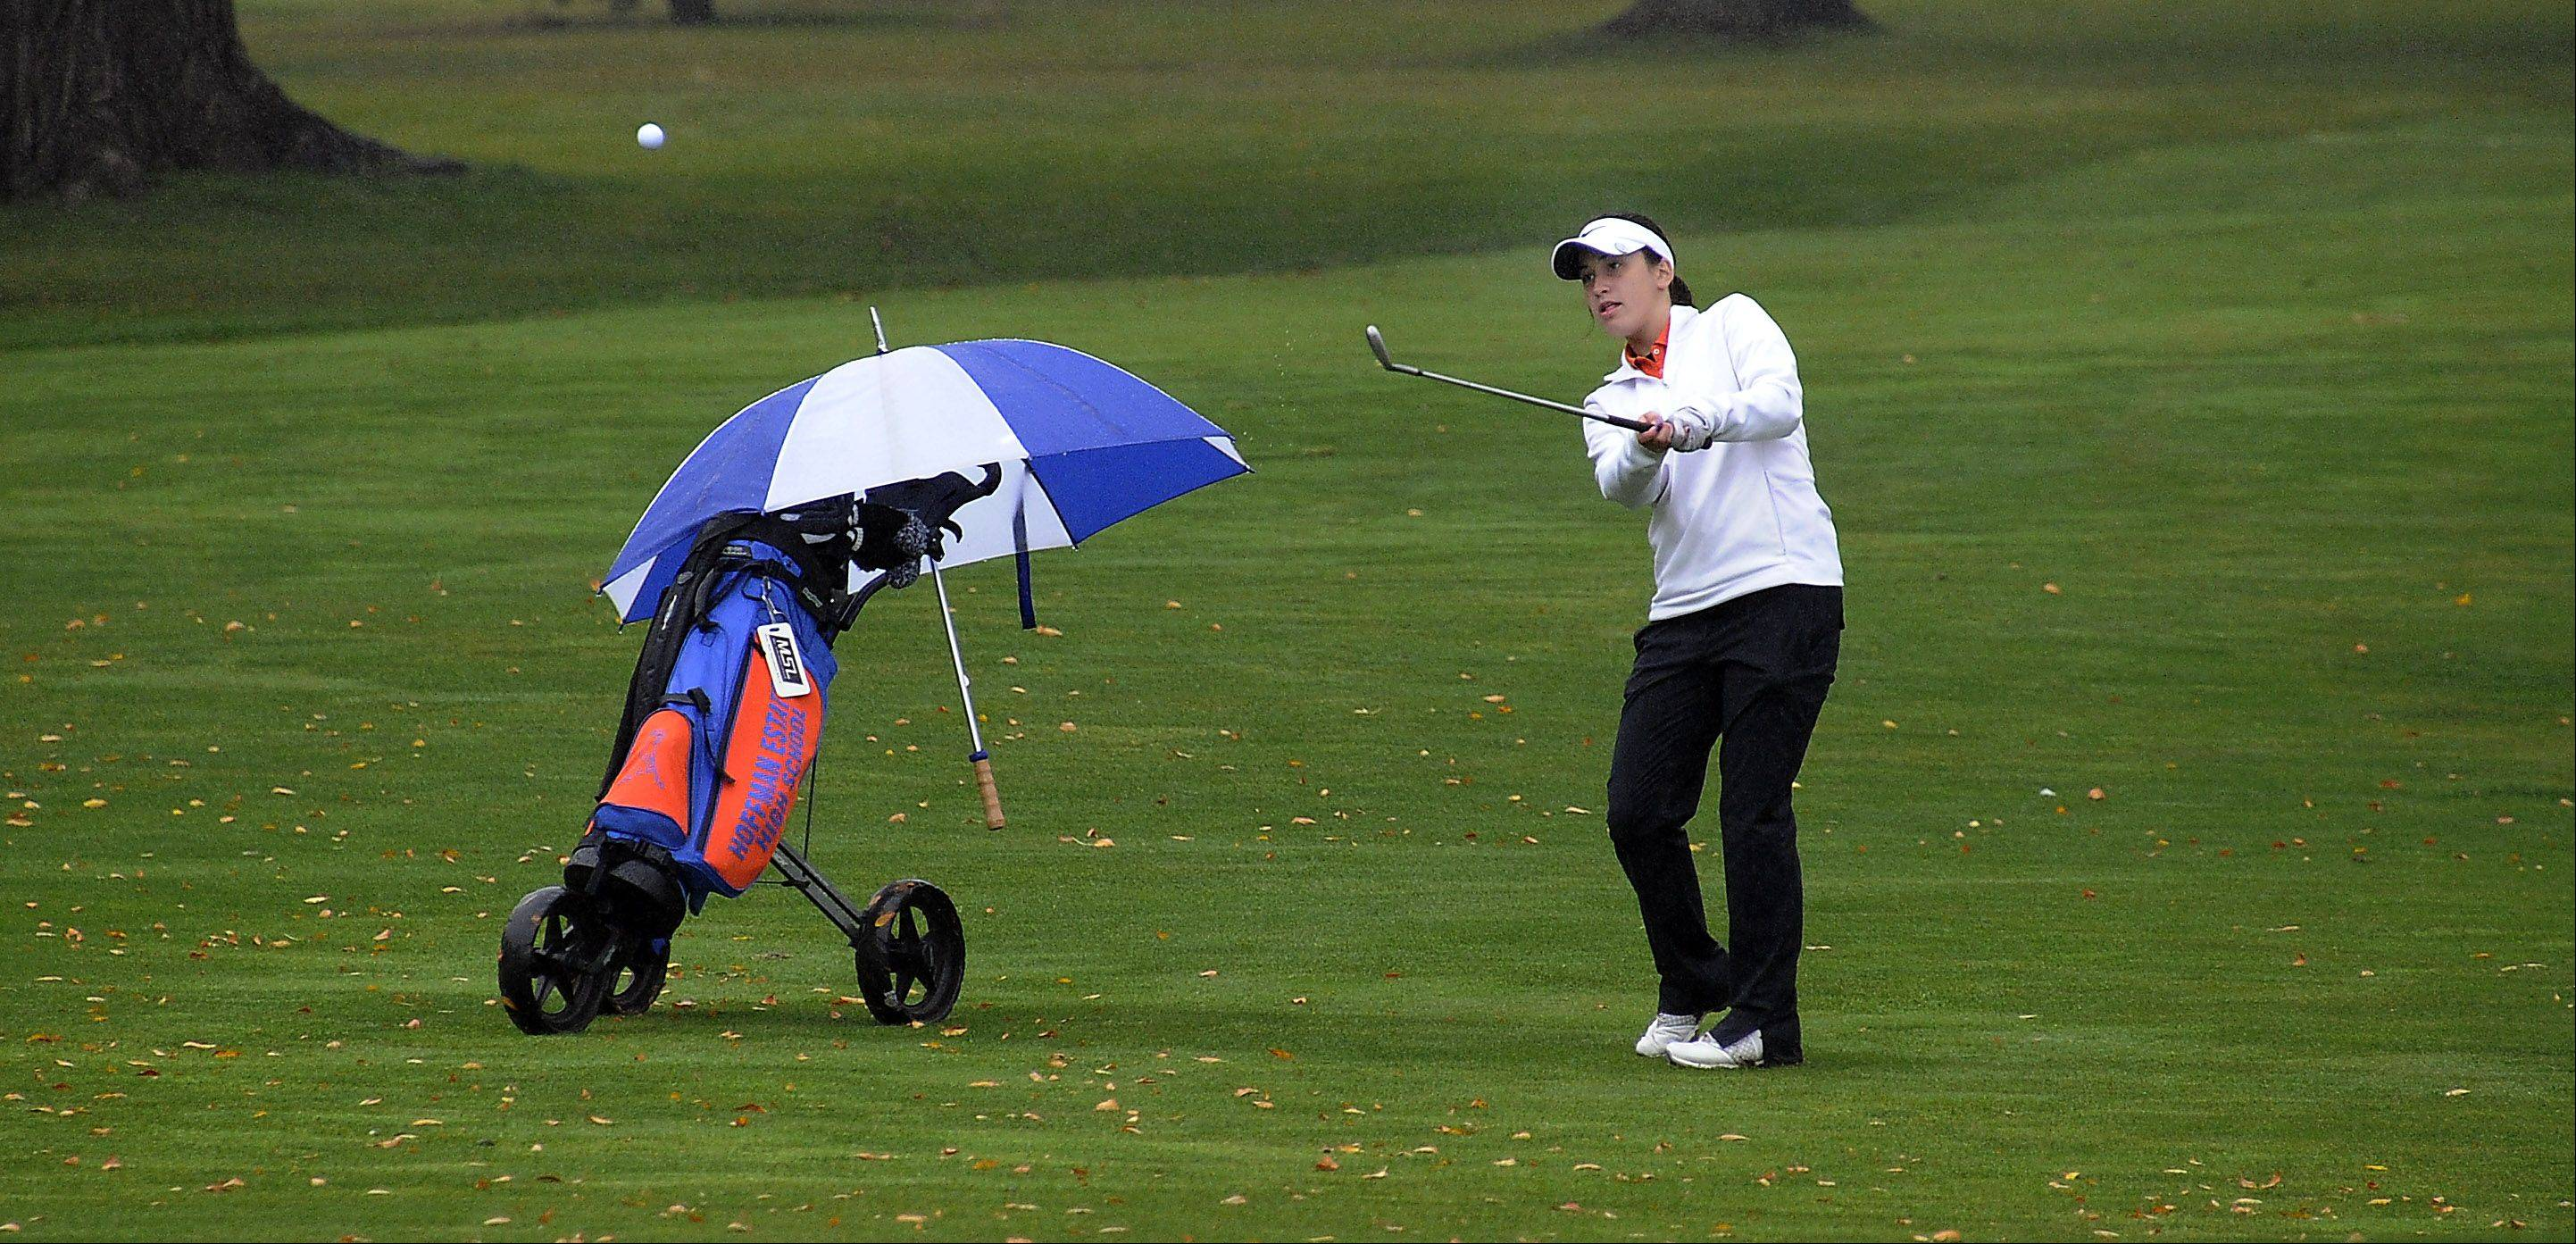 Hoffman Estates Hannah Brostoff chips up from the rough to the green on the back nine at the girls golf regional held at Bridges of Poplar Creek Country Club on Wednesday.